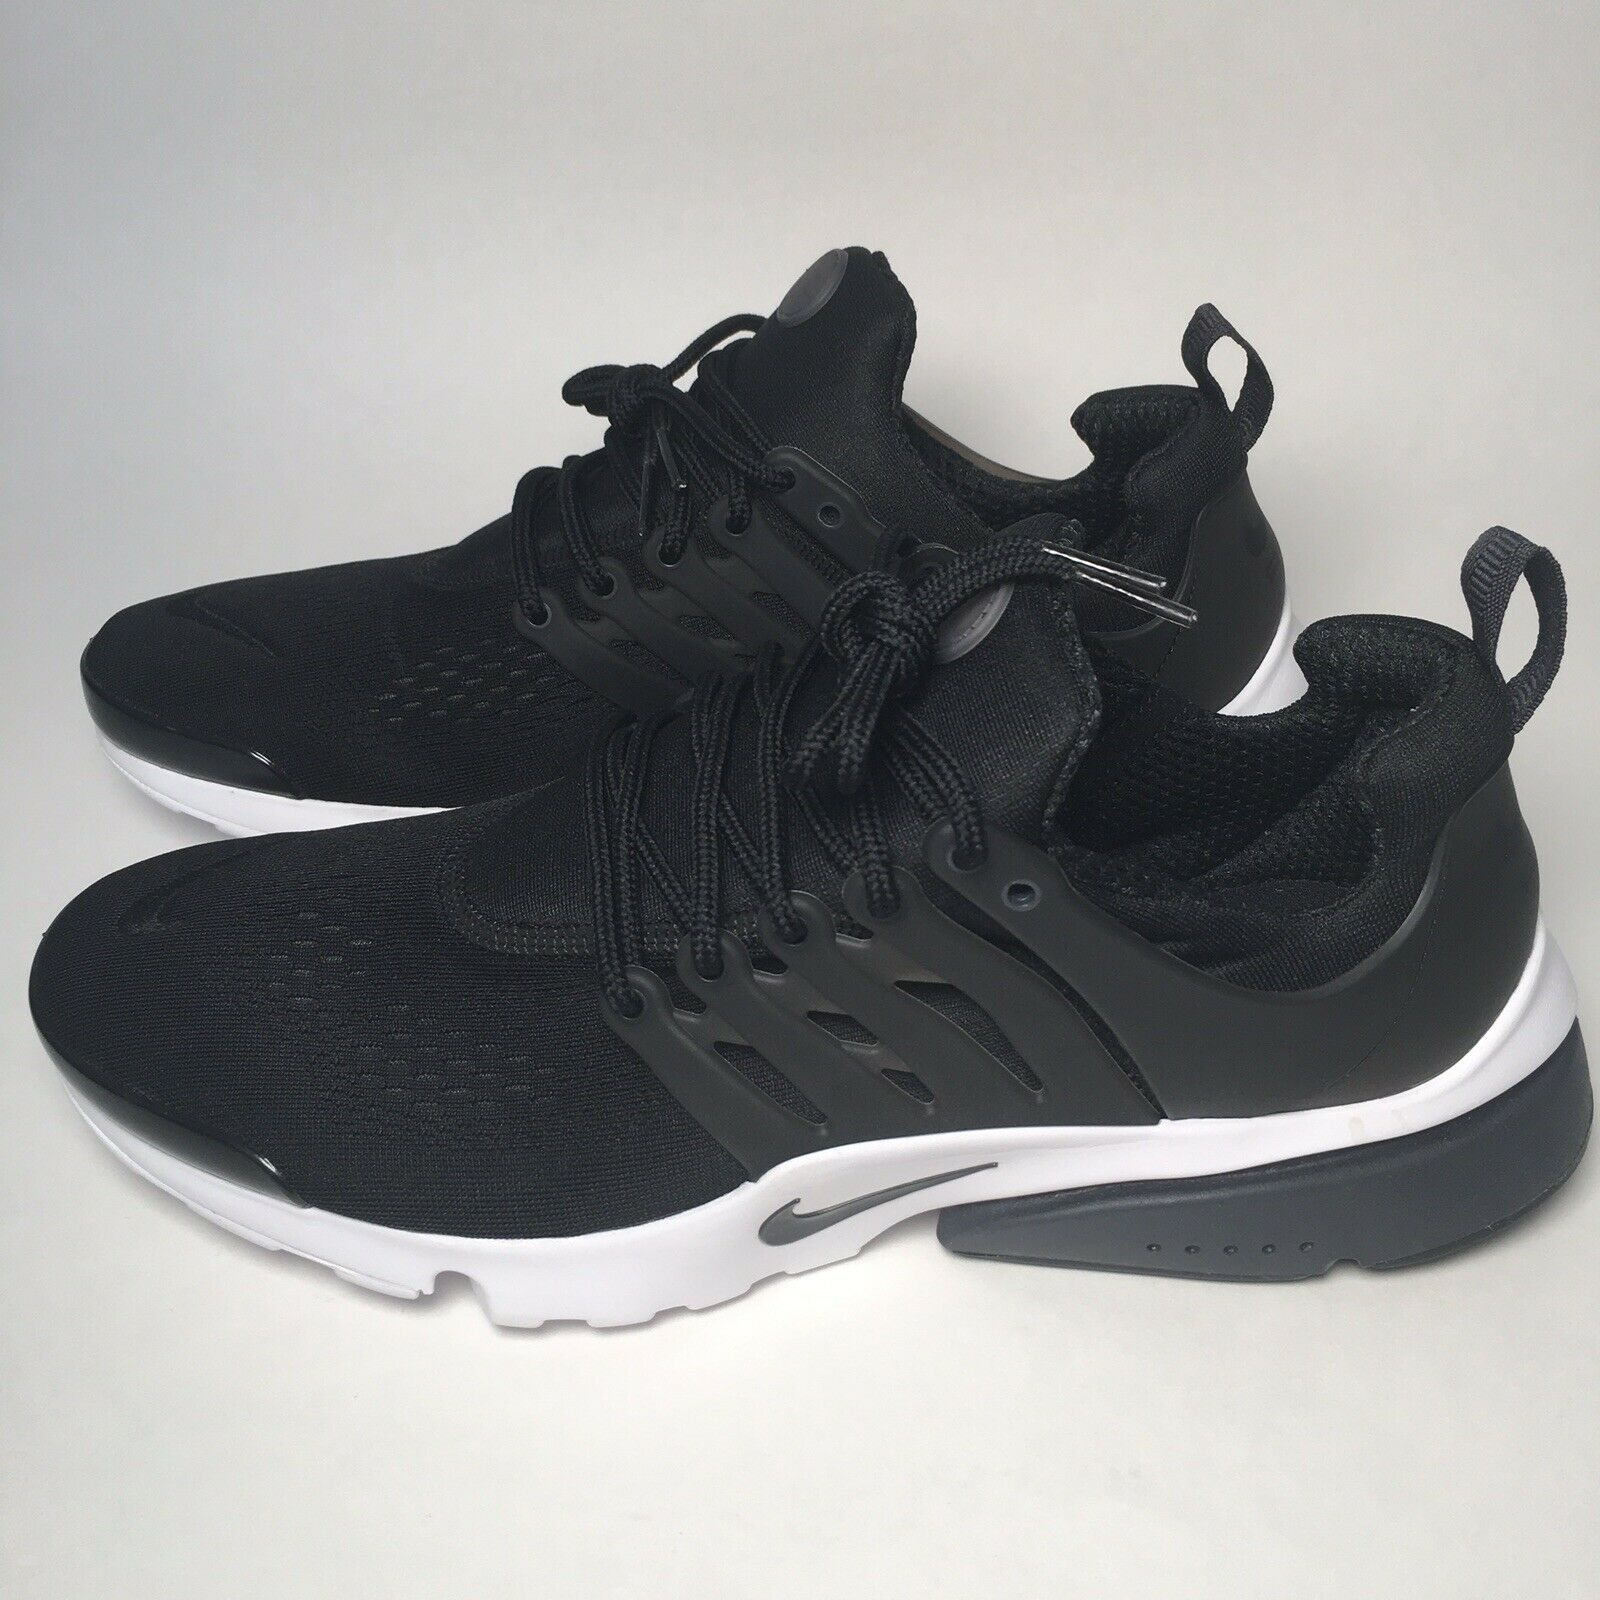 NIKE Air Presto Ultra Breathe (898020-003) BLACK Size 13